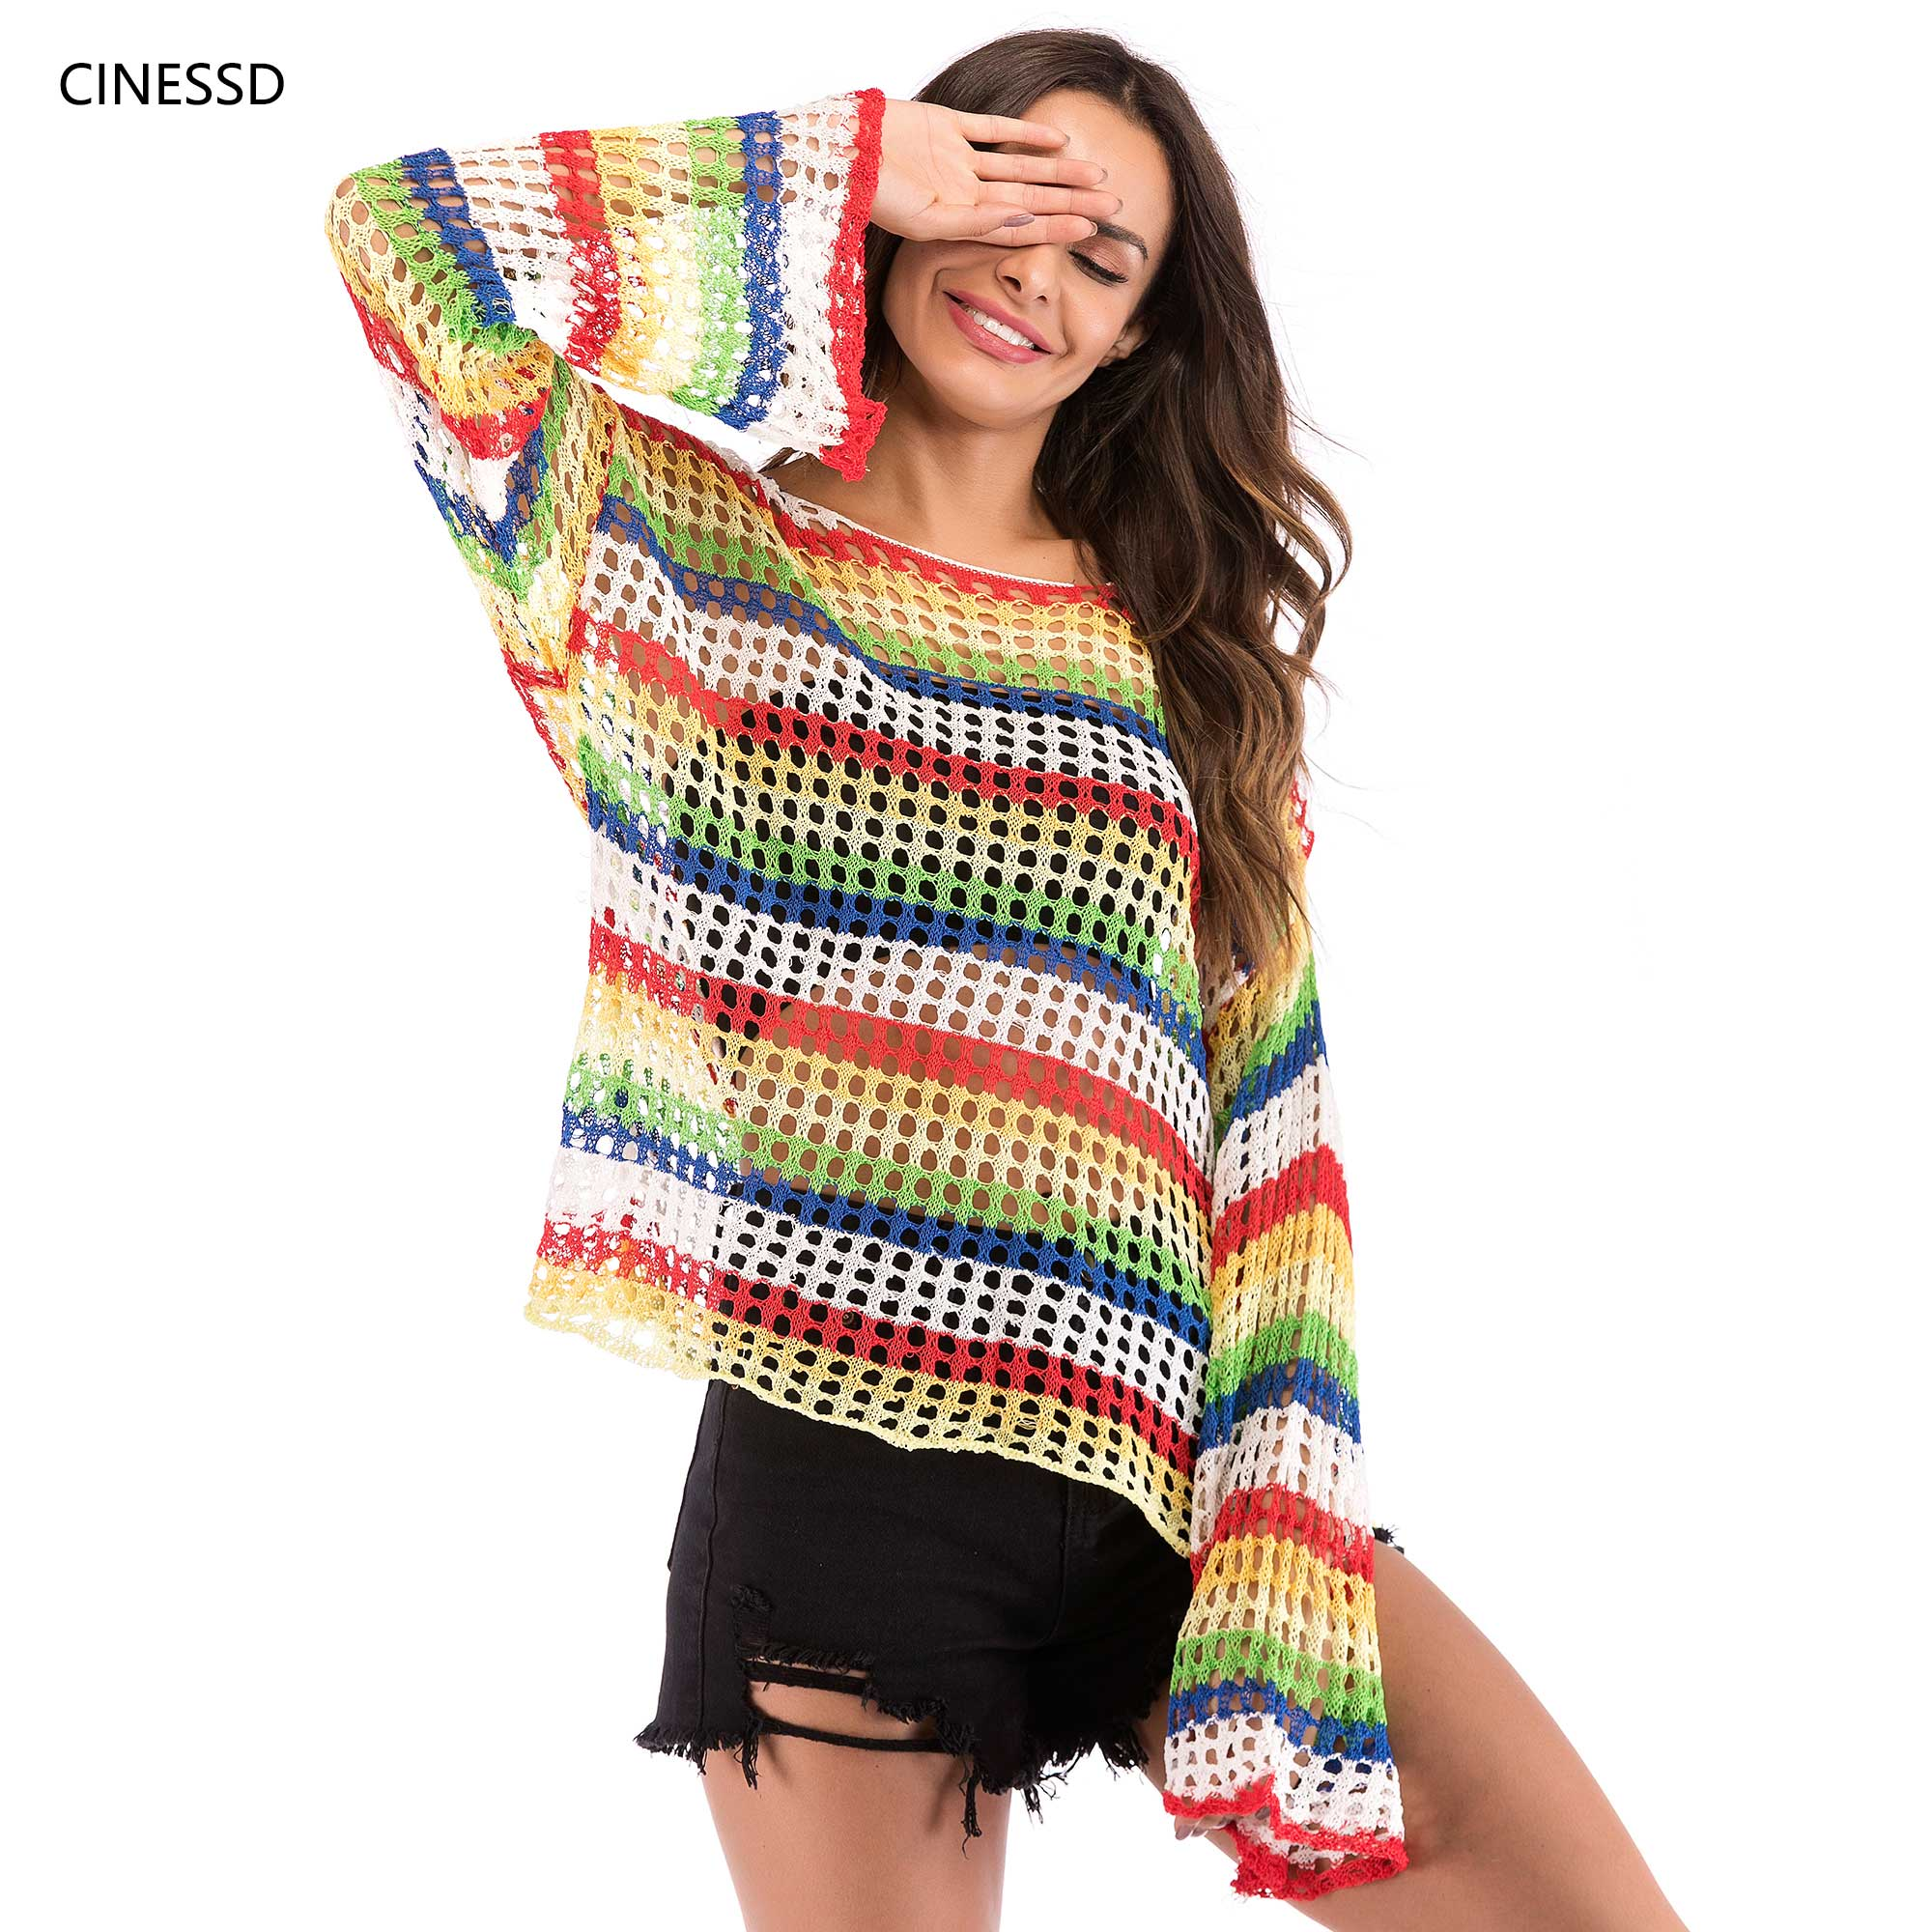 CINESSD Summer Women Cover Up Tops Hollow Knit Tee Shirt Beach Loose Striped Long Sleeve Round Neck Casual